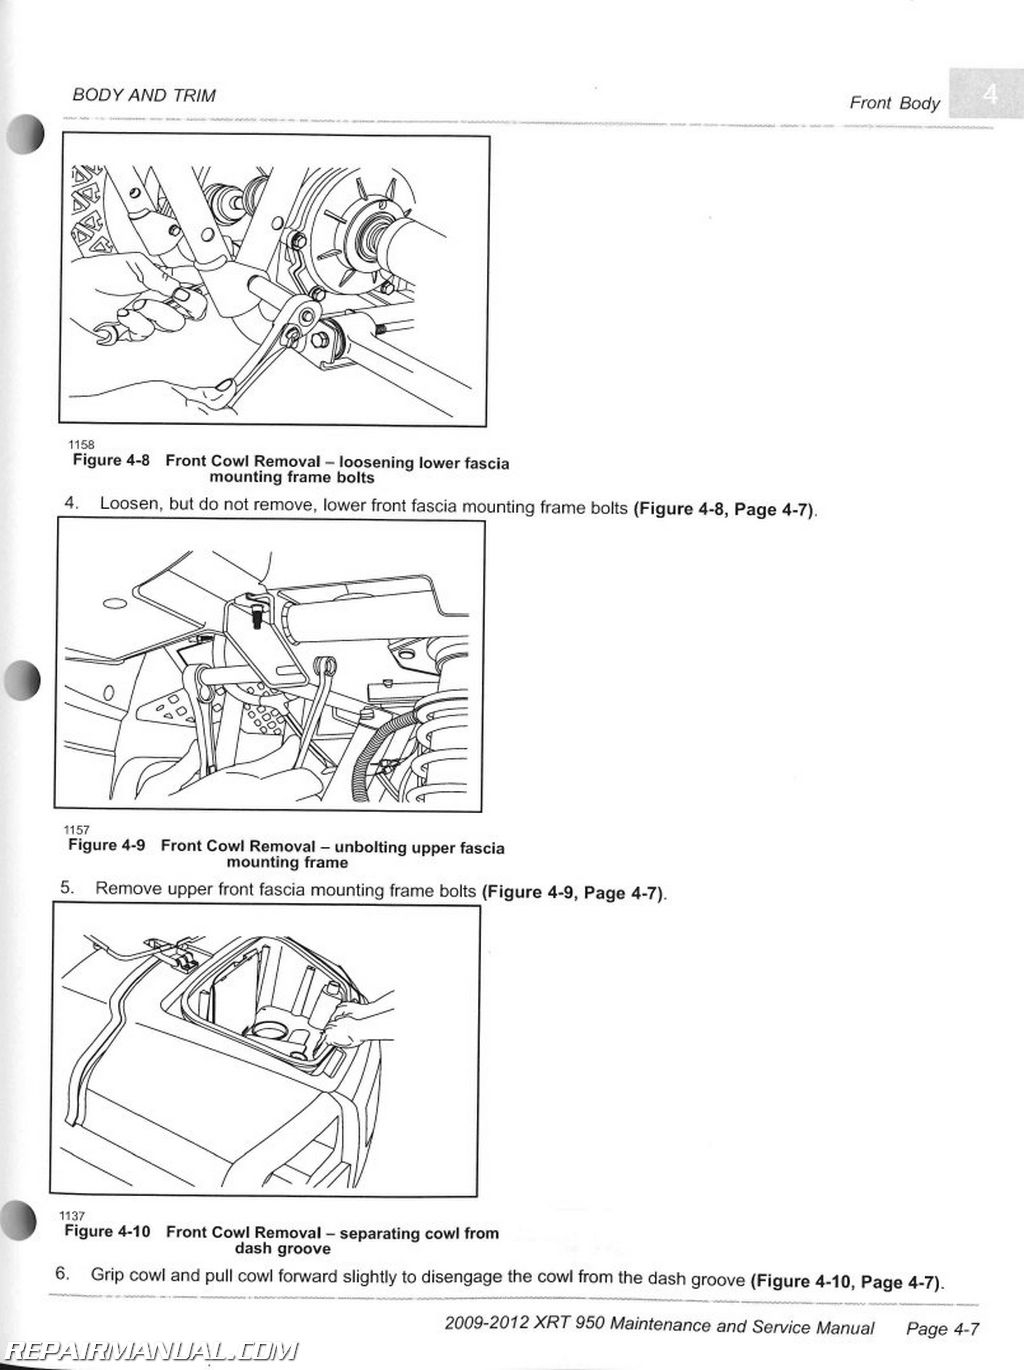 Club Car Fuel Filter Diagram - Wiring Diagram Data - Club Car Ds Wiring Diagram